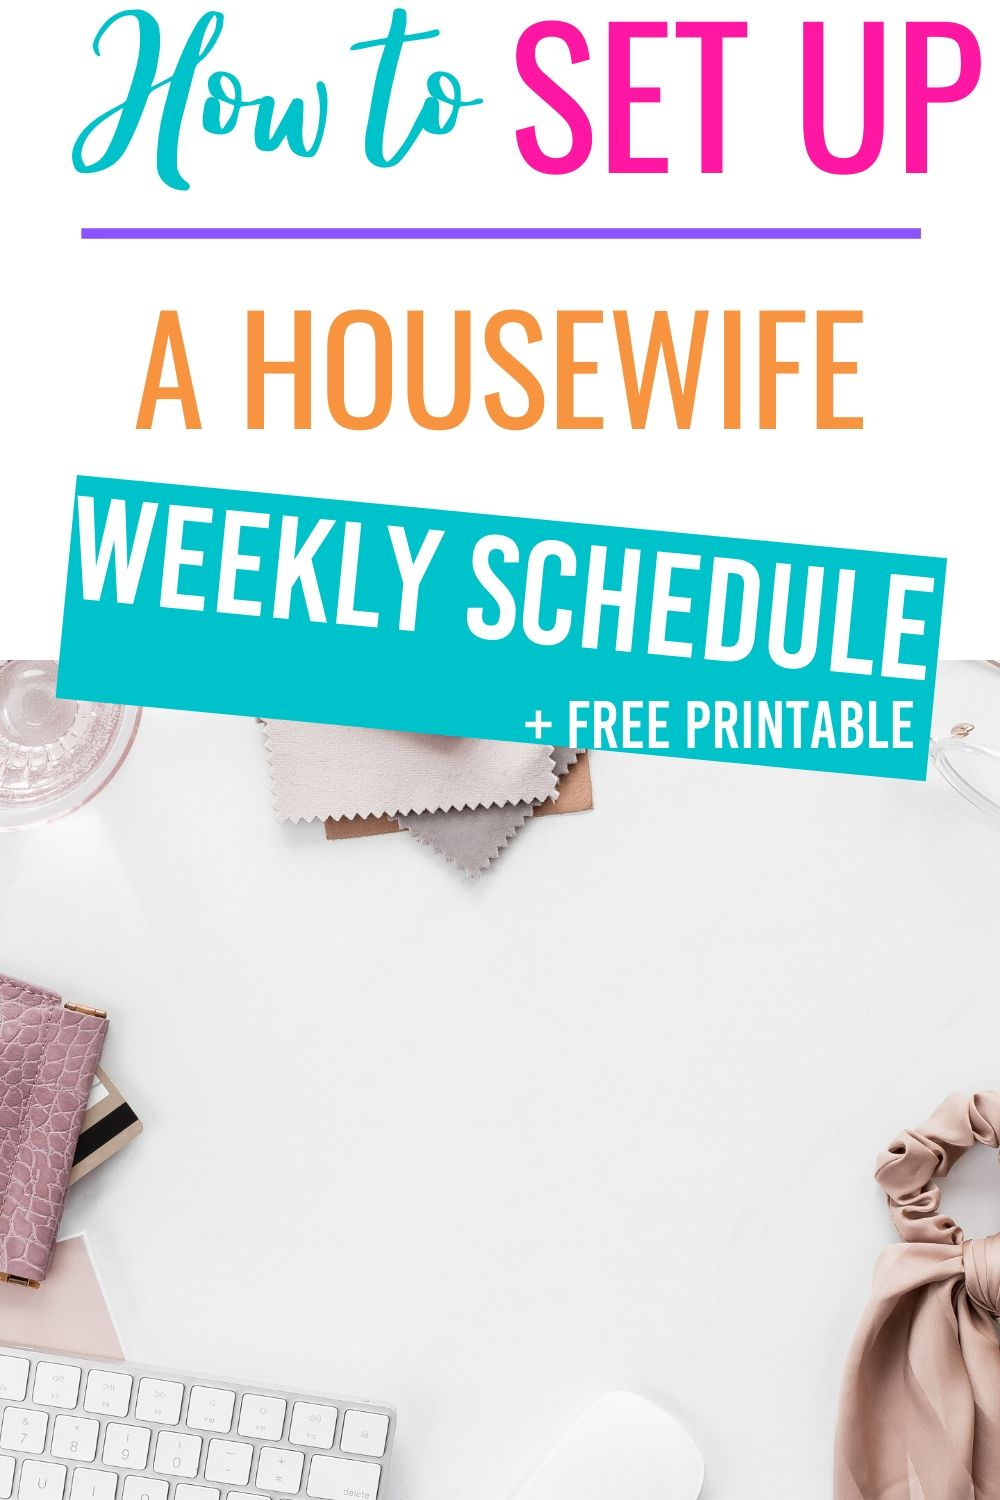 Having a housewife weekly schedule will keep you organized and allow you to get more done.  Learn how to set up a weekly schedule of a stay at home mom. #housewifeweeklyschedule #cleaninghome #weeklycleaningschedule via @homebyjenn